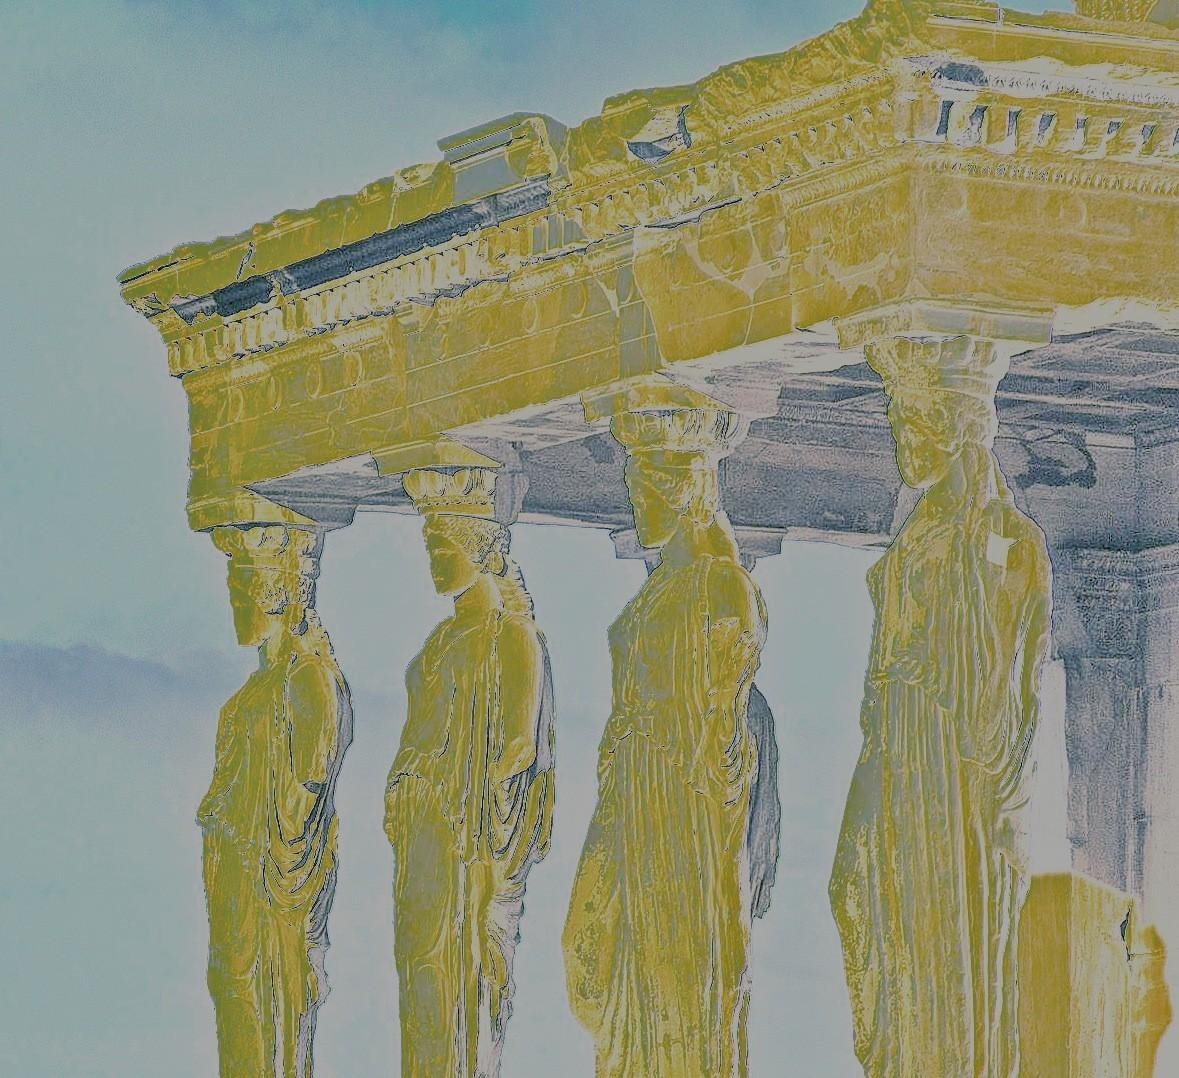 2013 09 Acropolis5 2 - Erechtheion - Artforum Editions